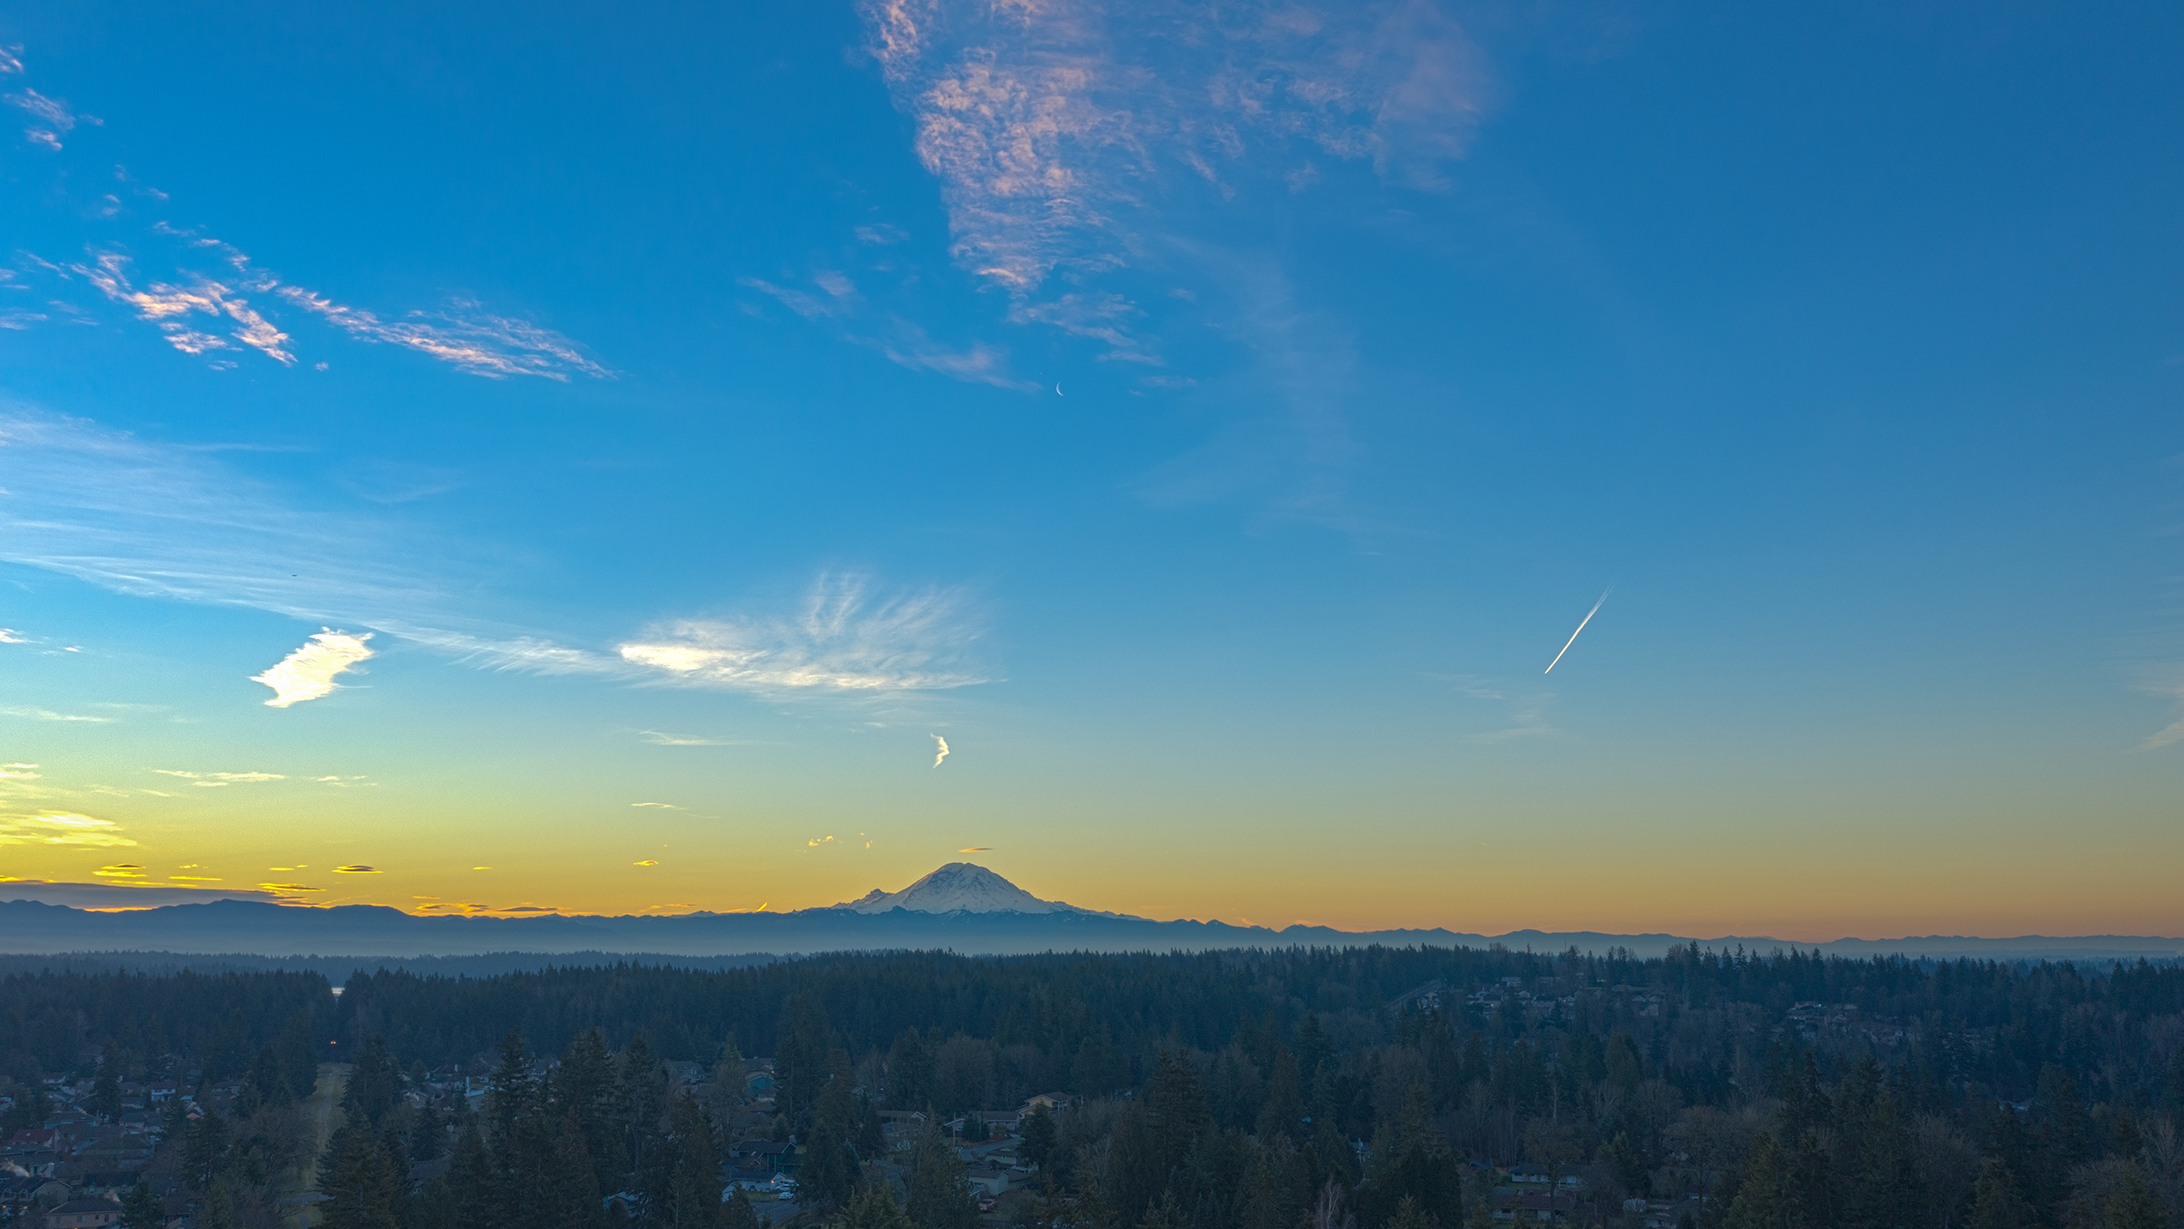 01_31_2019_Fairwood_Sunrise_HDR_4_SMALL.jpg